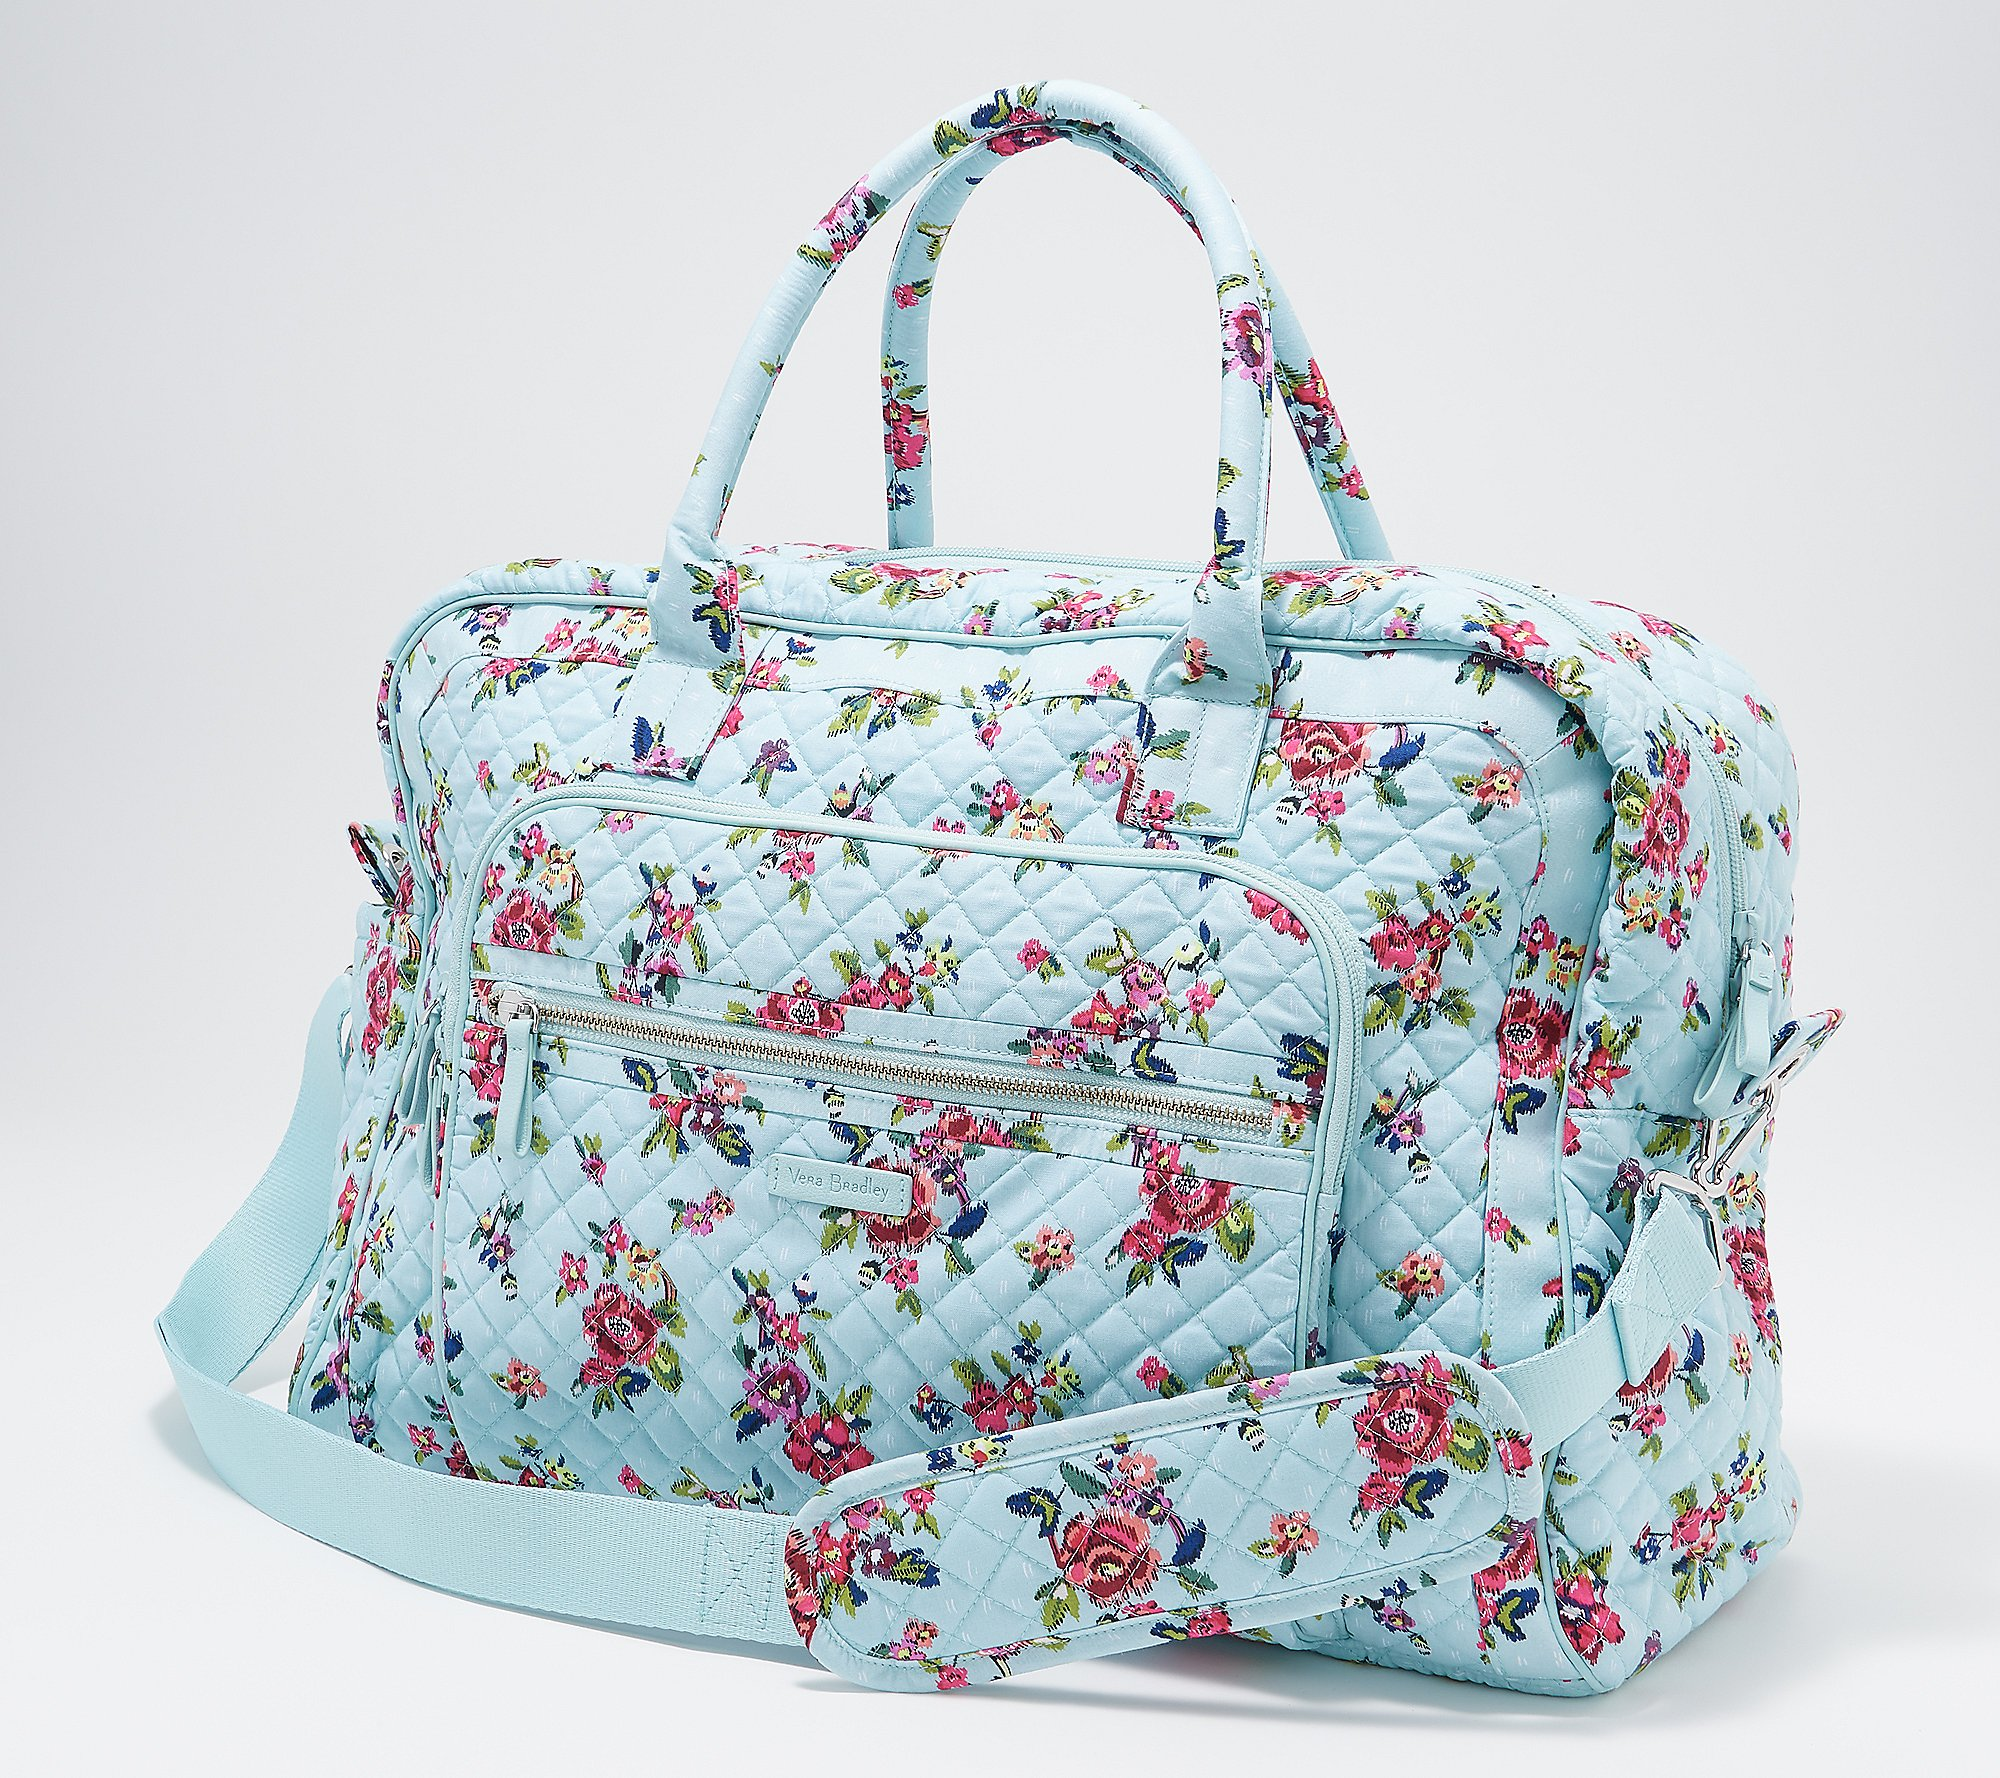 Vera Bradley Signature Weekender Bag (various colors)